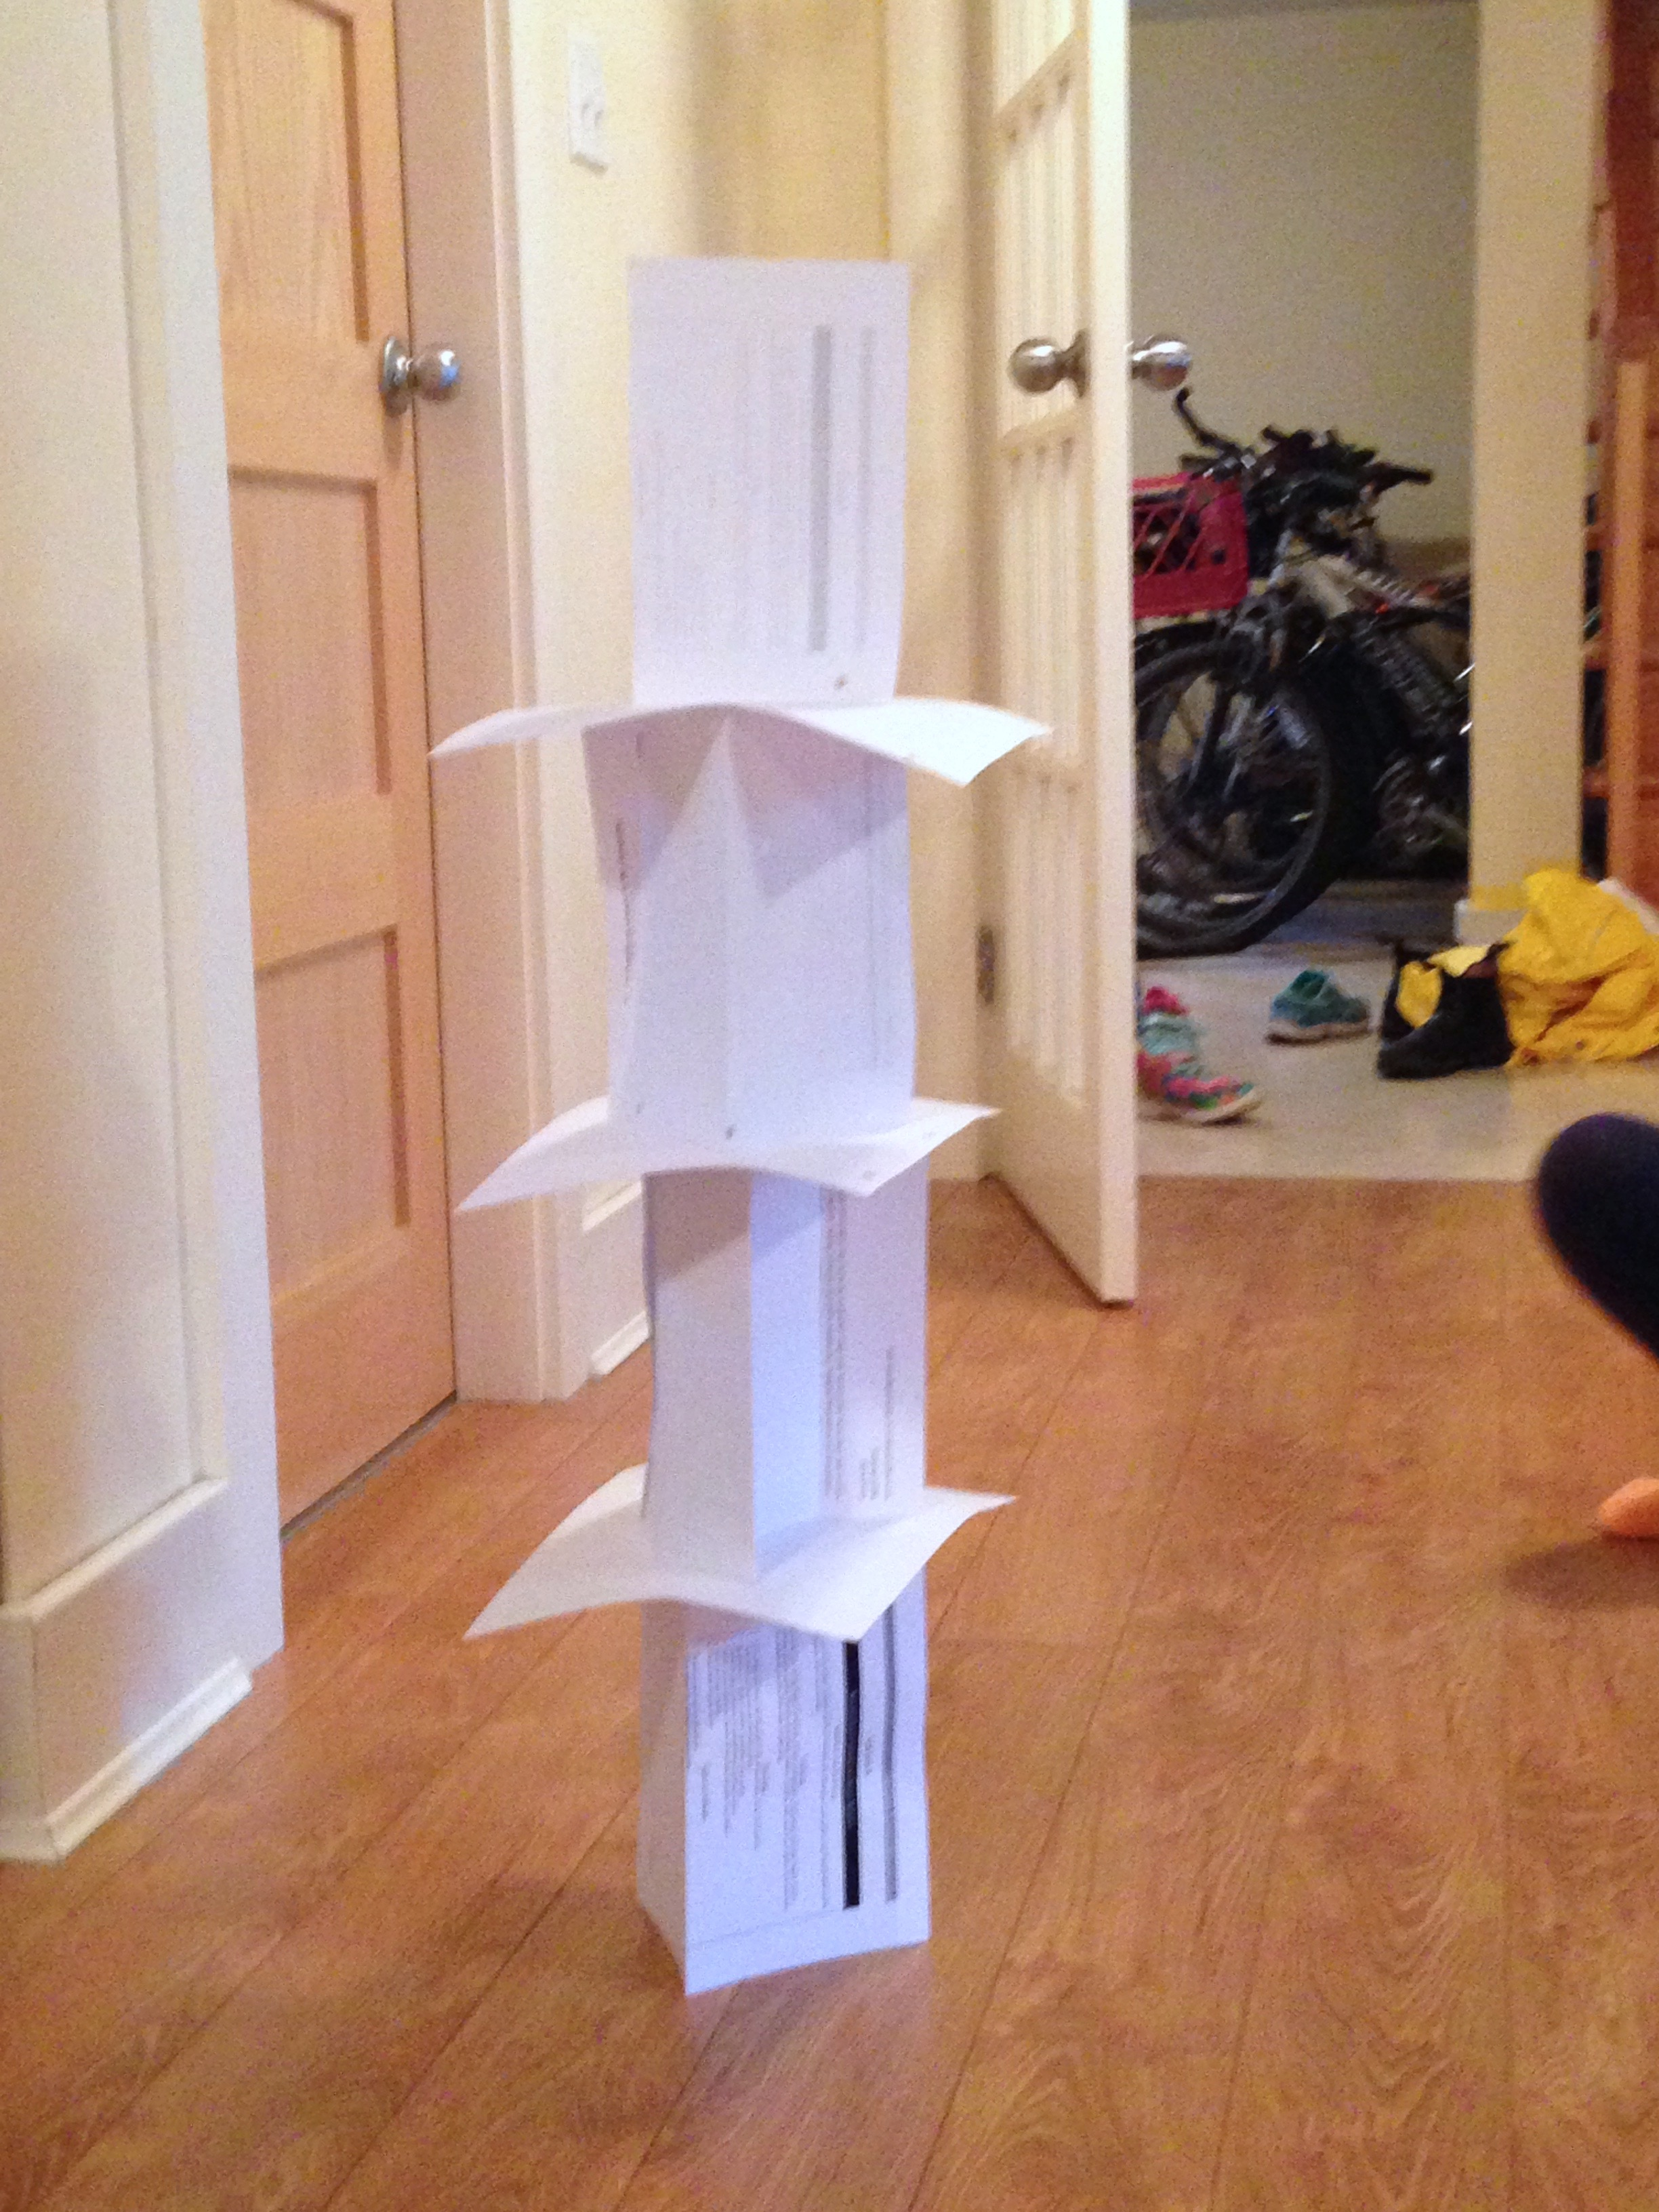 Paper Tower Challenge Ingridscienceca